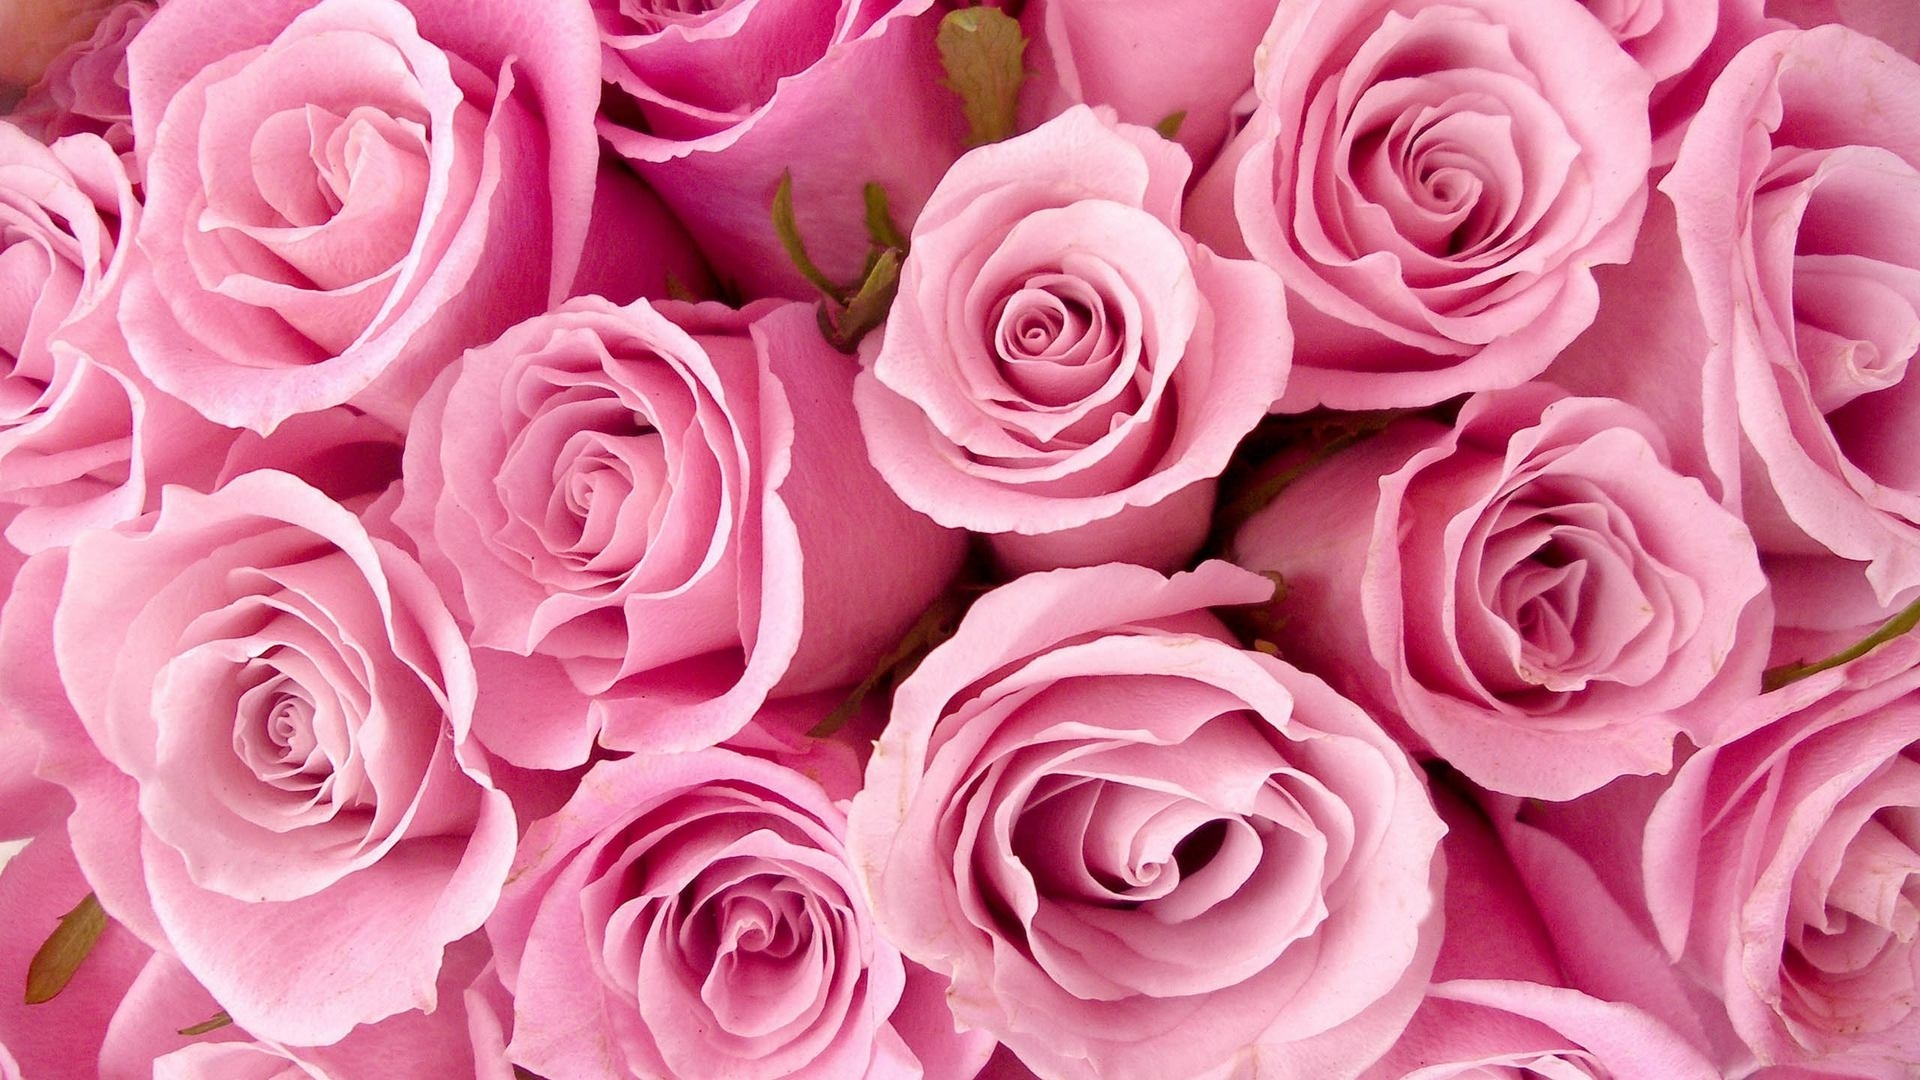 flowers pink roses wallpapers (desktop, phone, tablet) - awesome